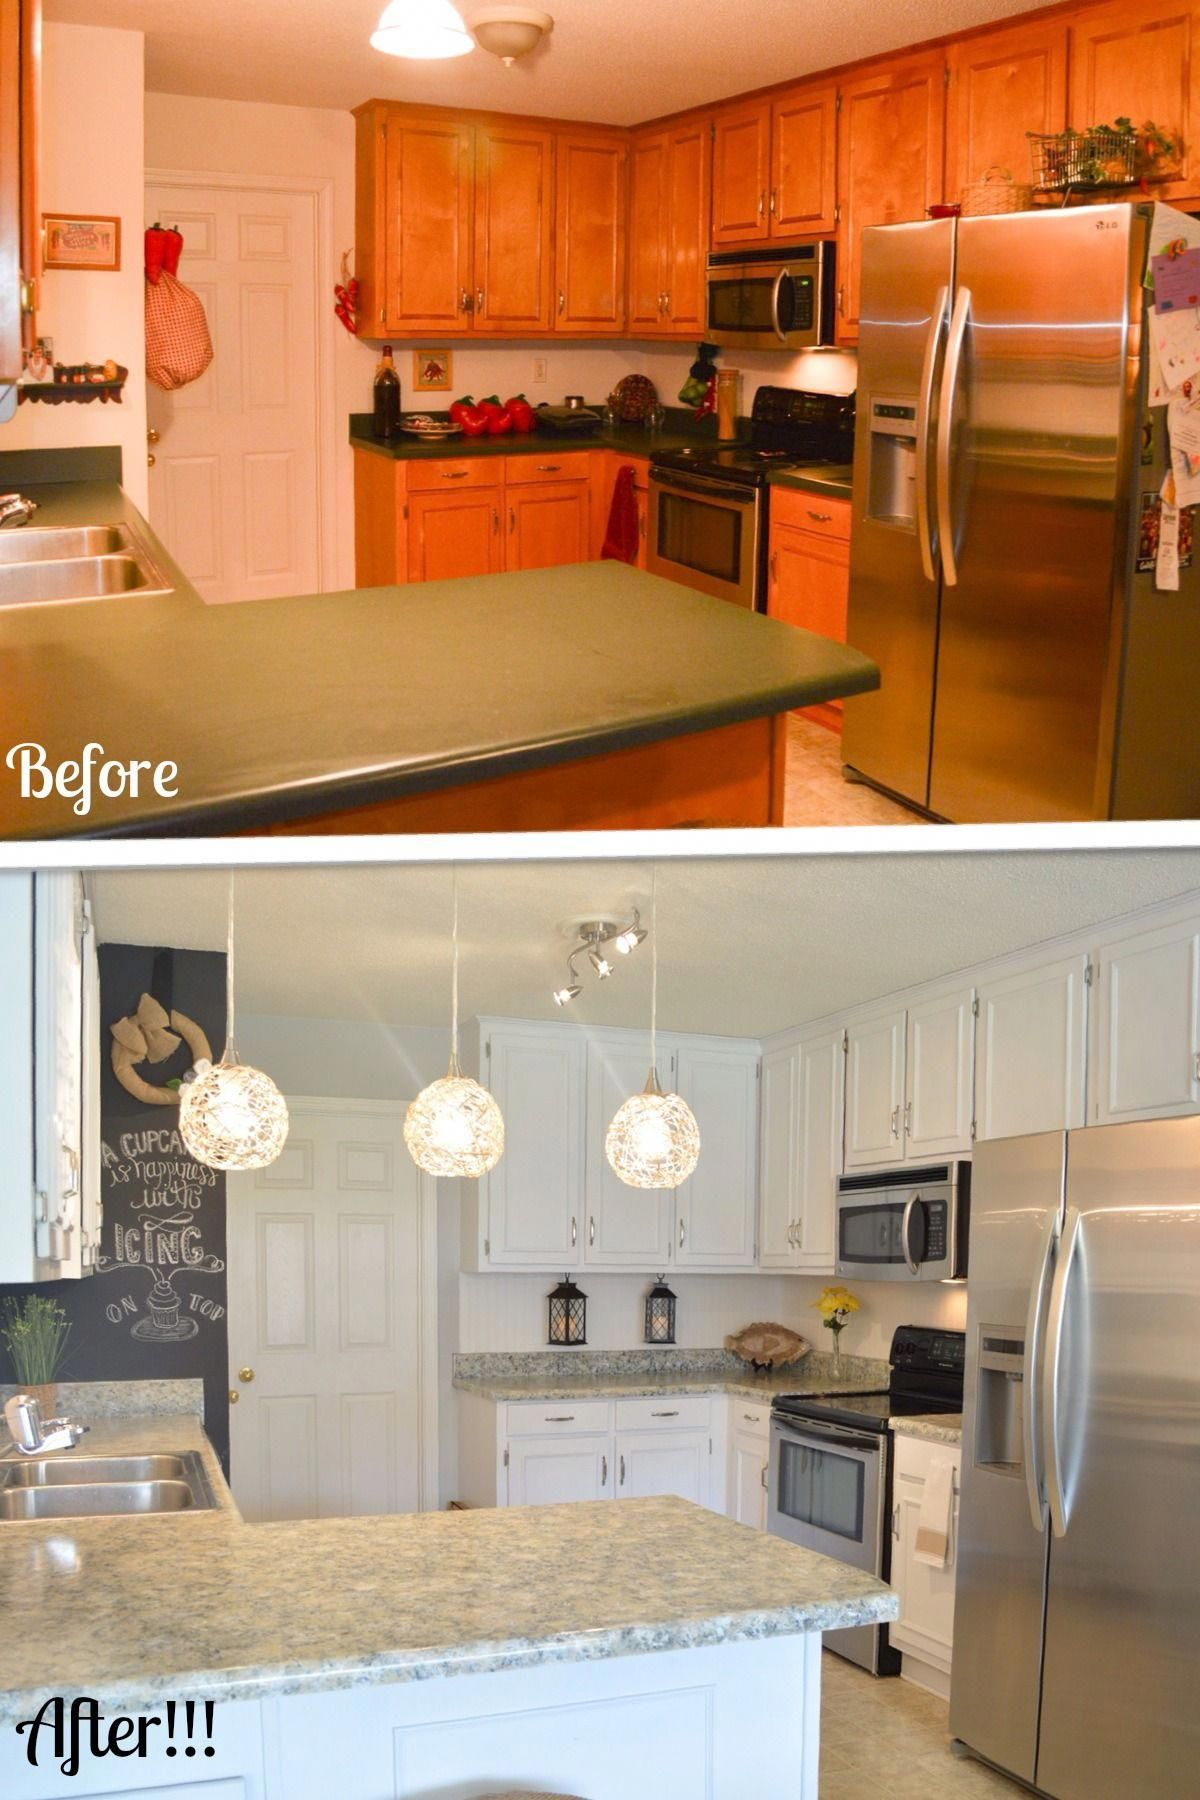 Do You Need To Hire A Professional For A Kitchen Remodel